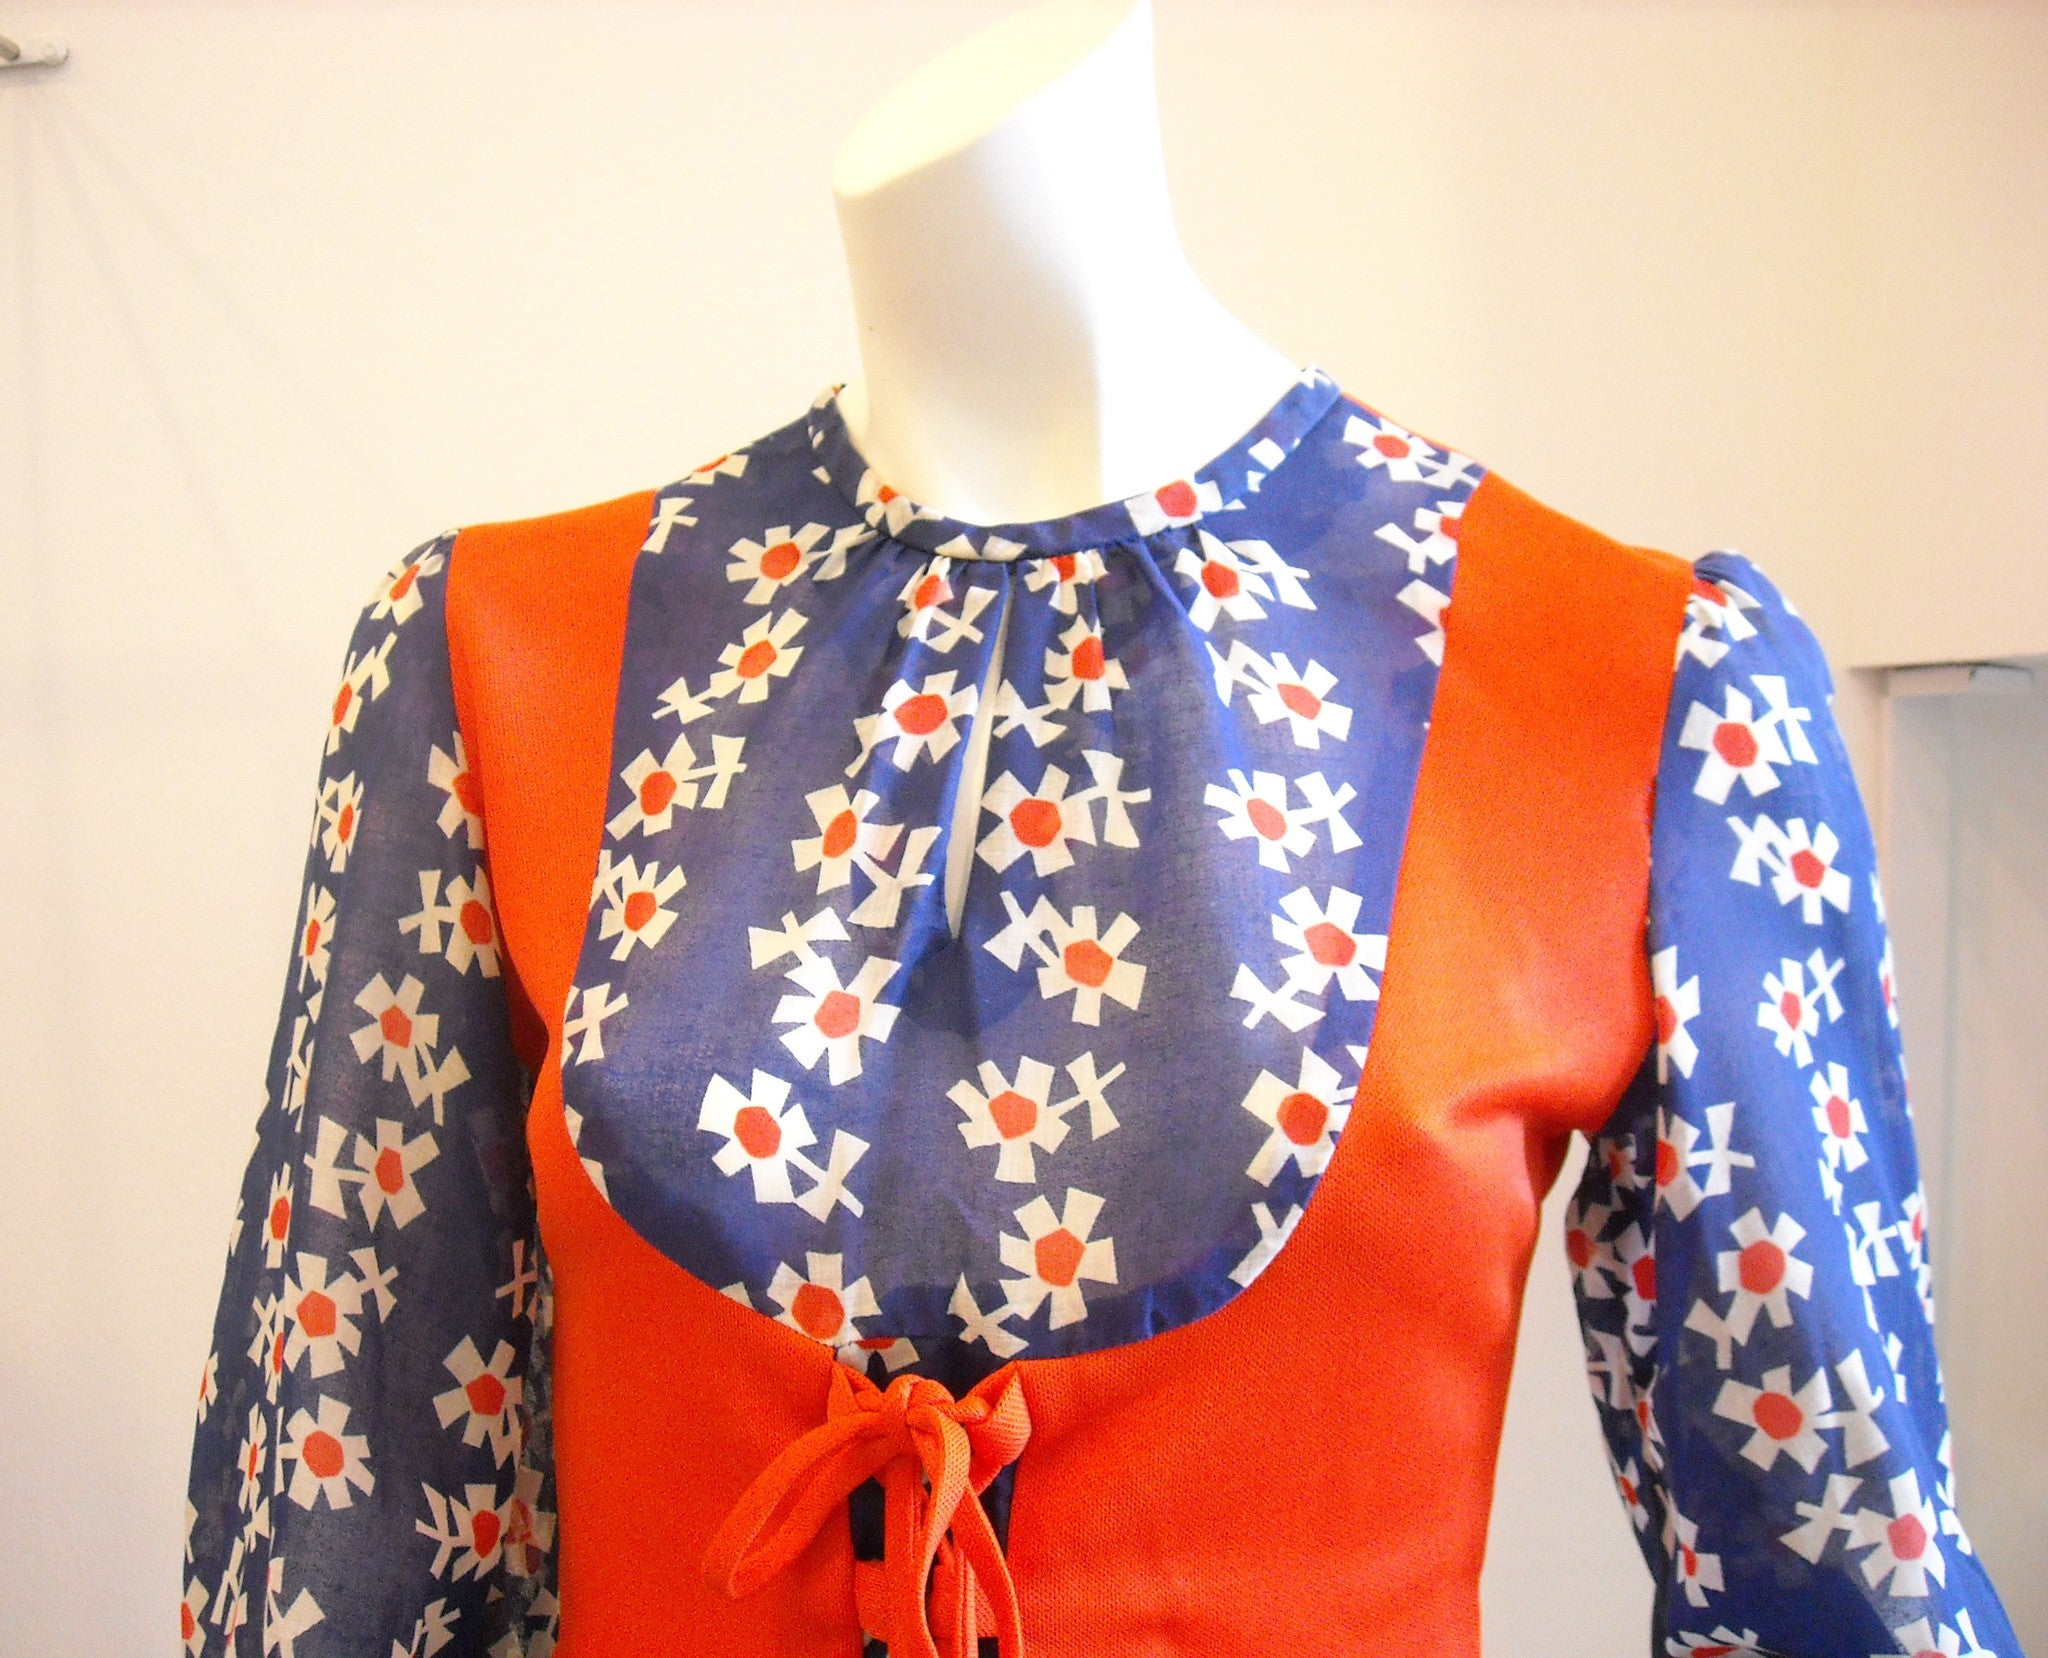 Cheeky Sexy Cool in Red & Blue Vintage Dress